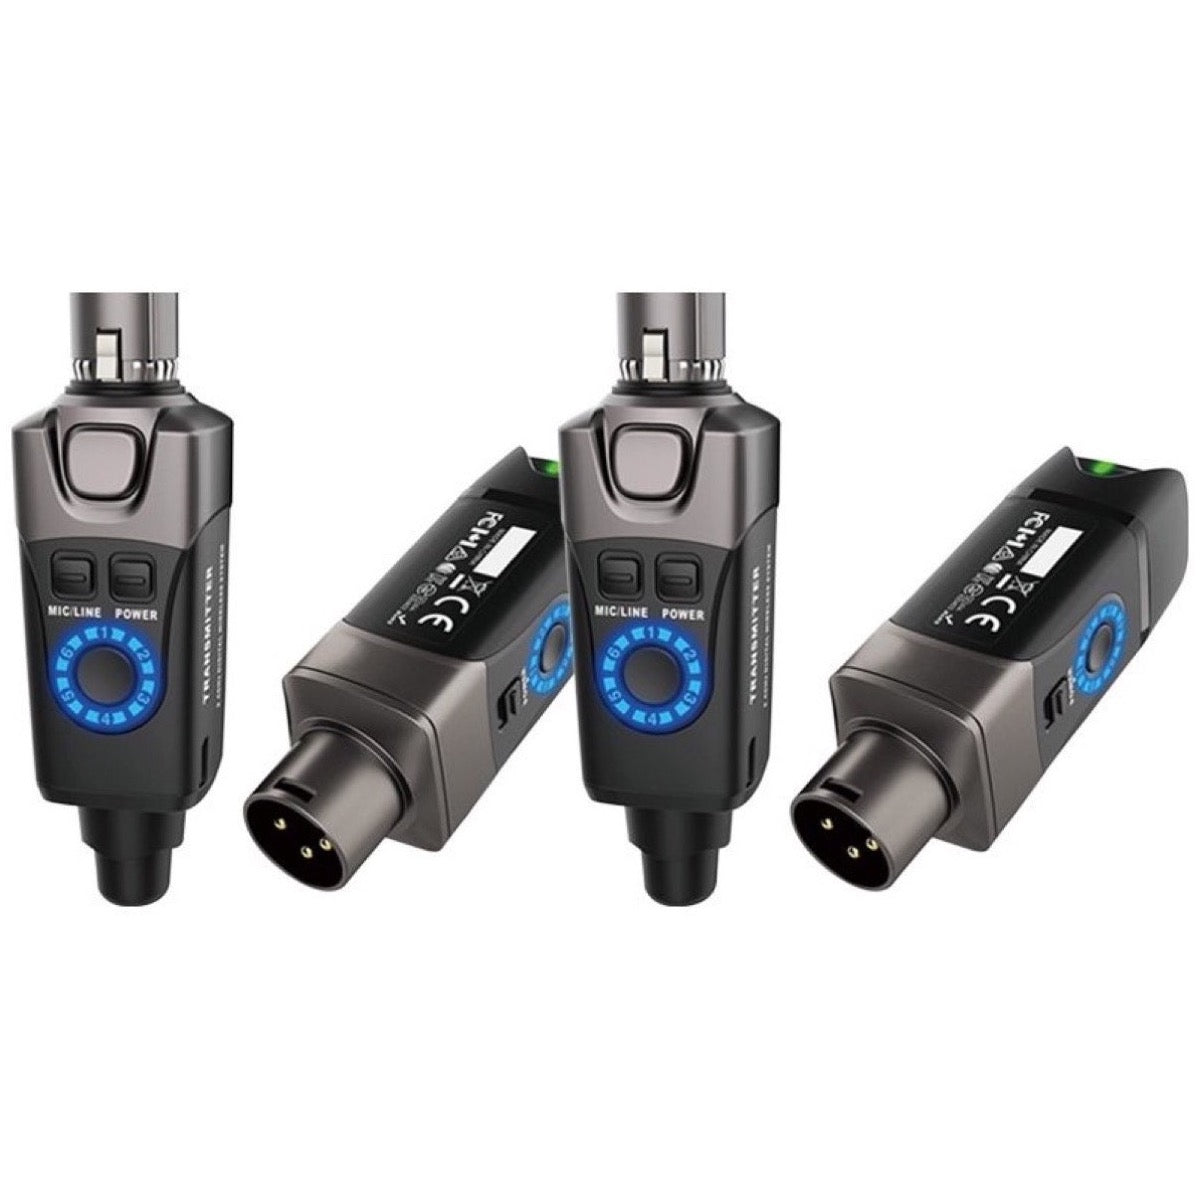 Xvive U3 Digital Plug-On Wireless System for XLR Dynamic Microphones, Black, Pair of Two Systems